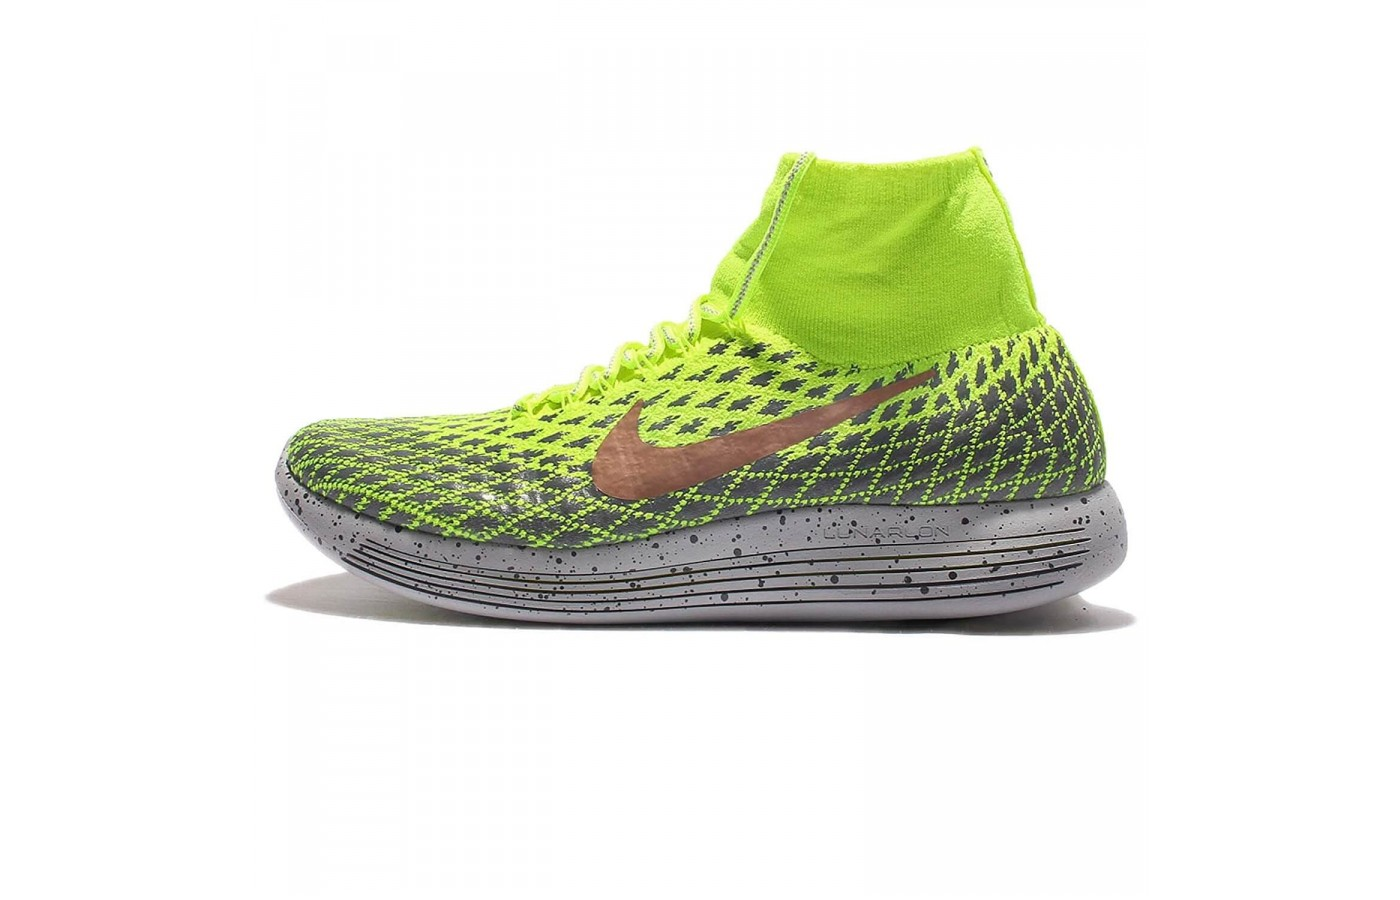 Lateral view of Nike LunarEpic FlyKnit Shield